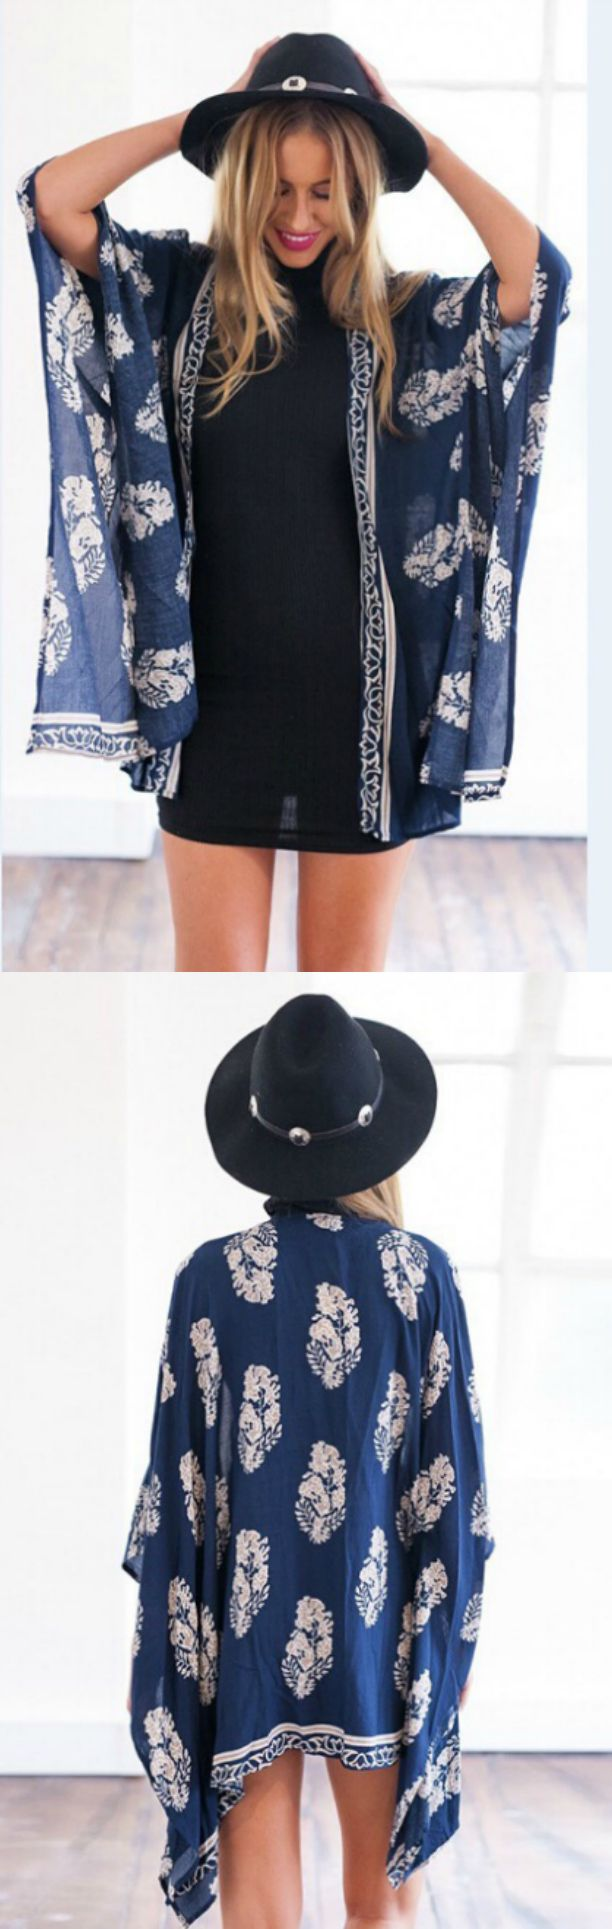 $32.00 - A Boho Kimono Coverup is now available at Pasaboho. ❤️ This coverup exhibit unique printed patterns. ❤️ :: boho fashion :: gypsy style :: hppie chic :: boho chic :: outfit ideas :: boho kimono :: free spirit :: fashion trend :: embroidered :: flowers :: floral :: lace :: summer :: fabulous :: love :: street style :: fashion style :: boho style :: bohemian :: modern vintage :: ethnic tribal :: boho bags :: embroidery dress :: skirt :: cardigans :: jacket :: sweater :: tops